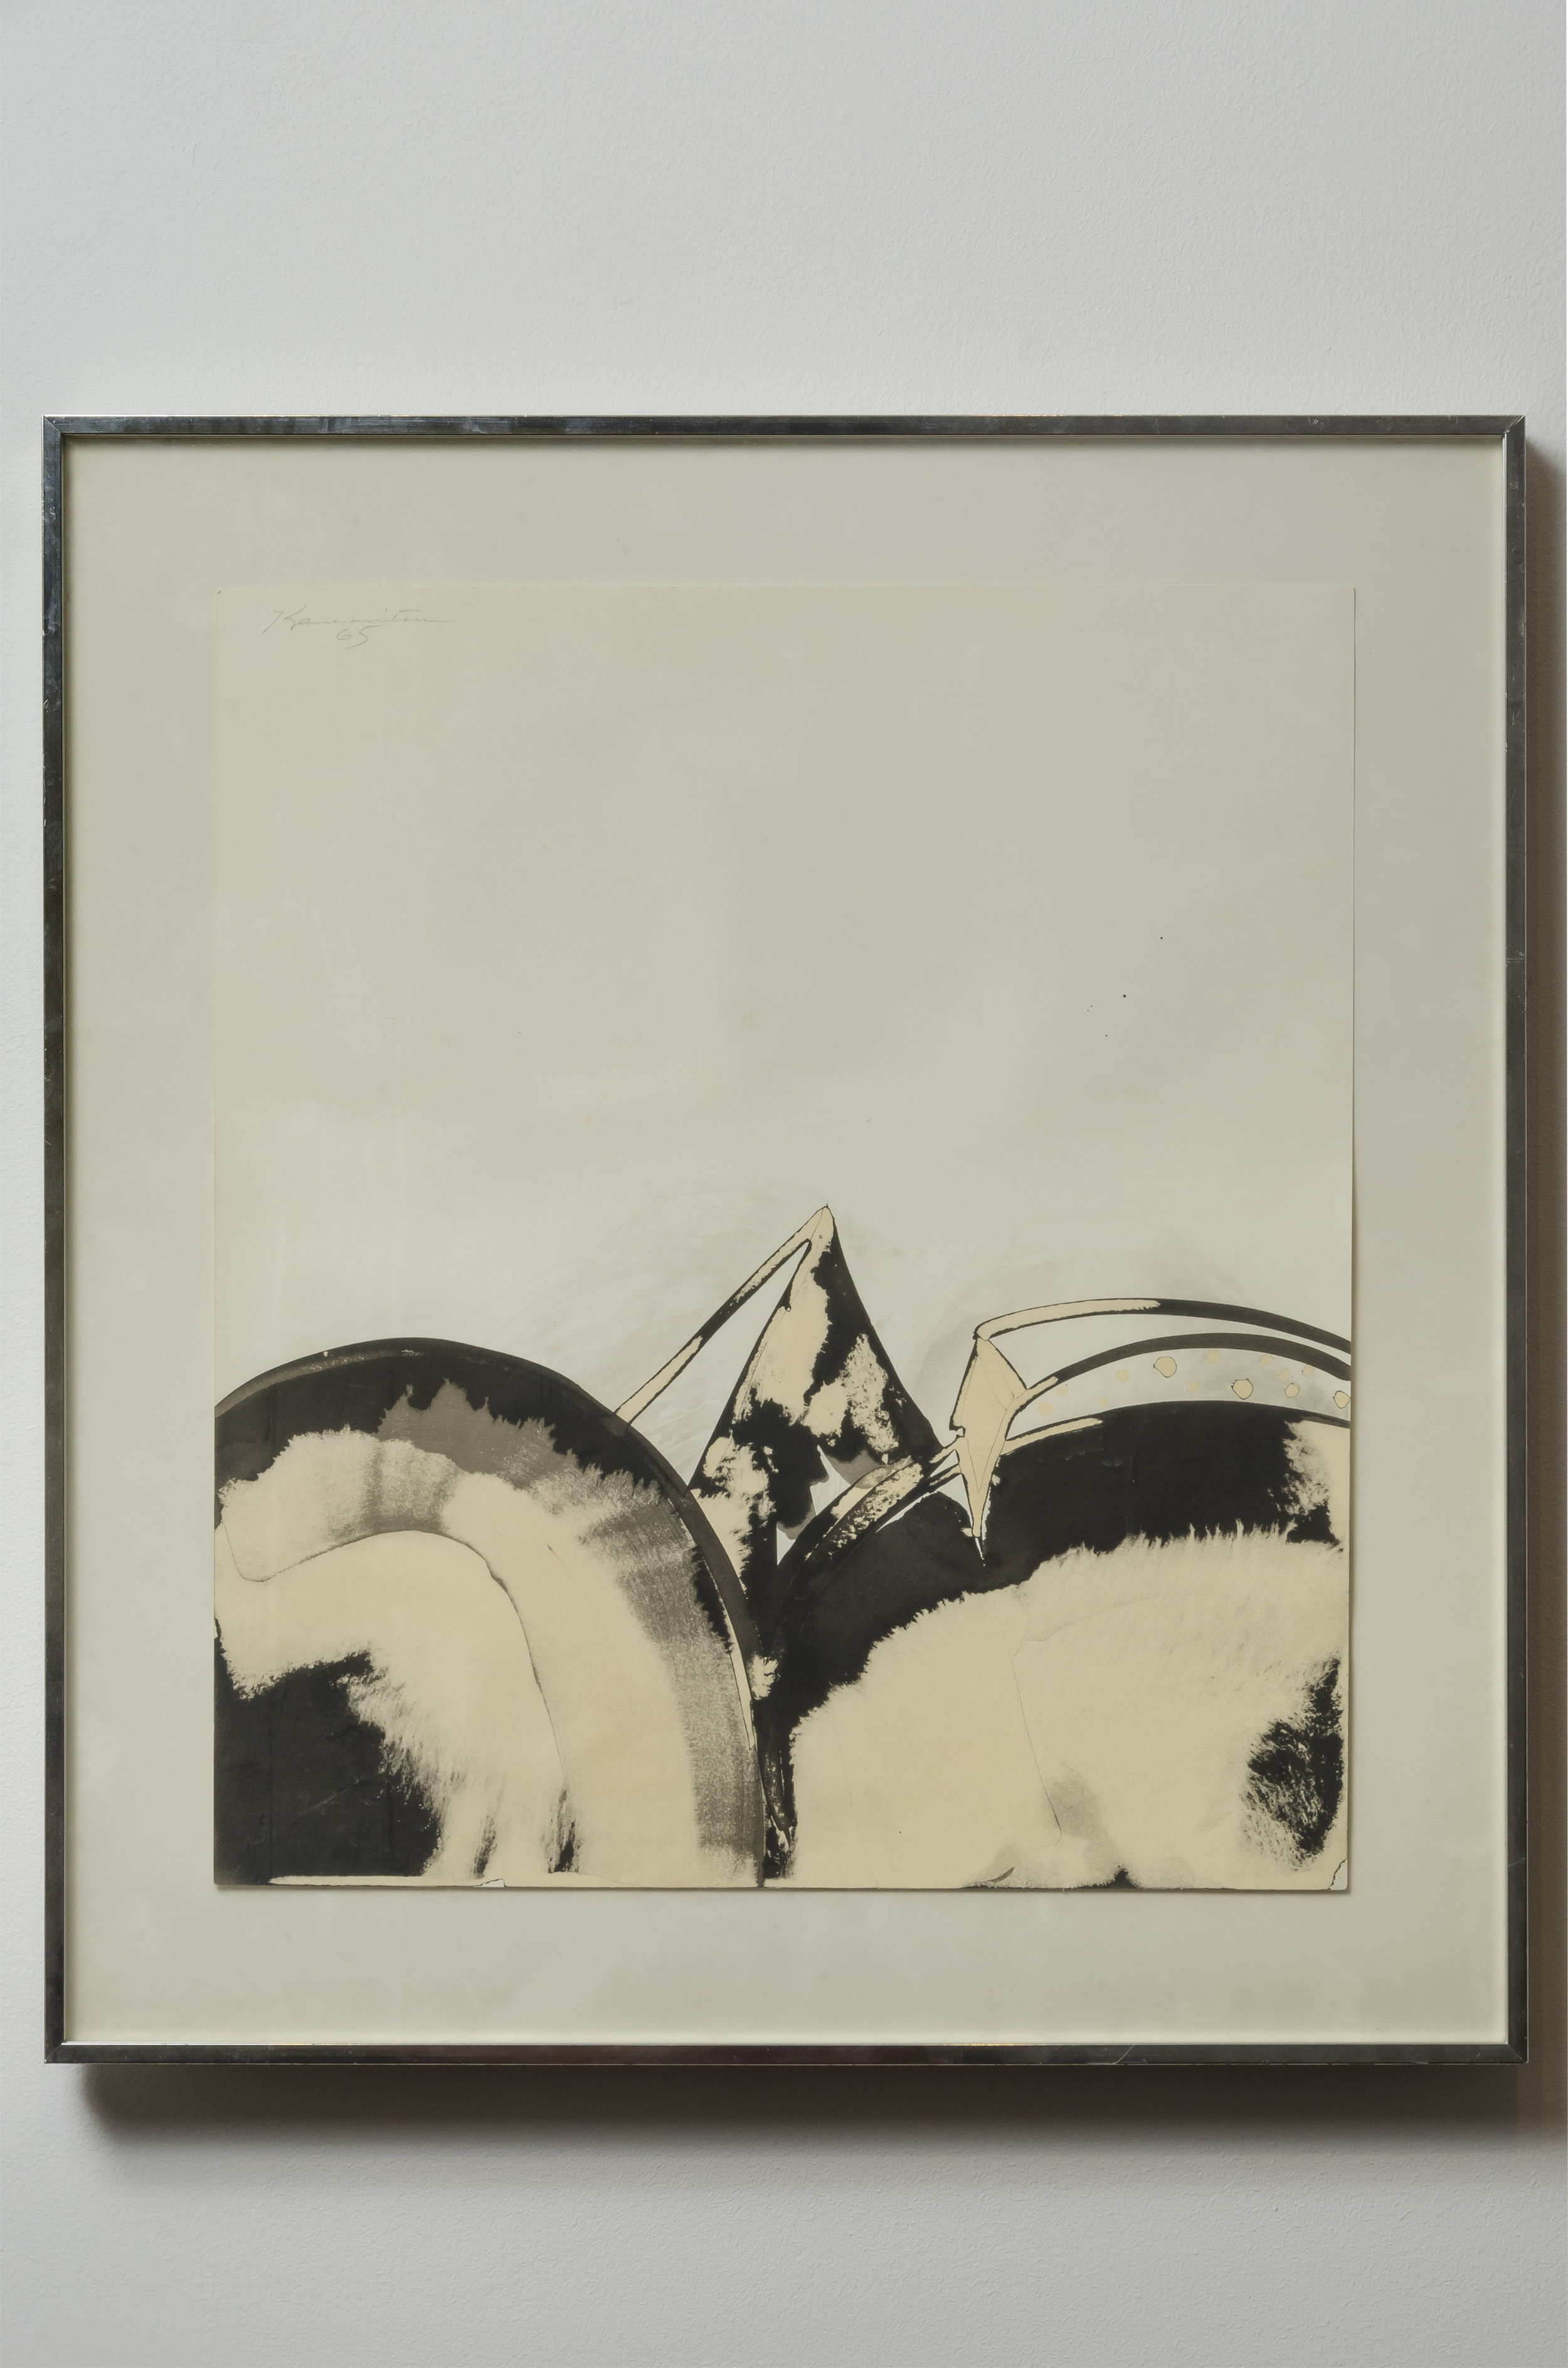 Untitled , 1965 sumi ink on paper 16 x 14 inches; 40.6 x 35.6 centimeters